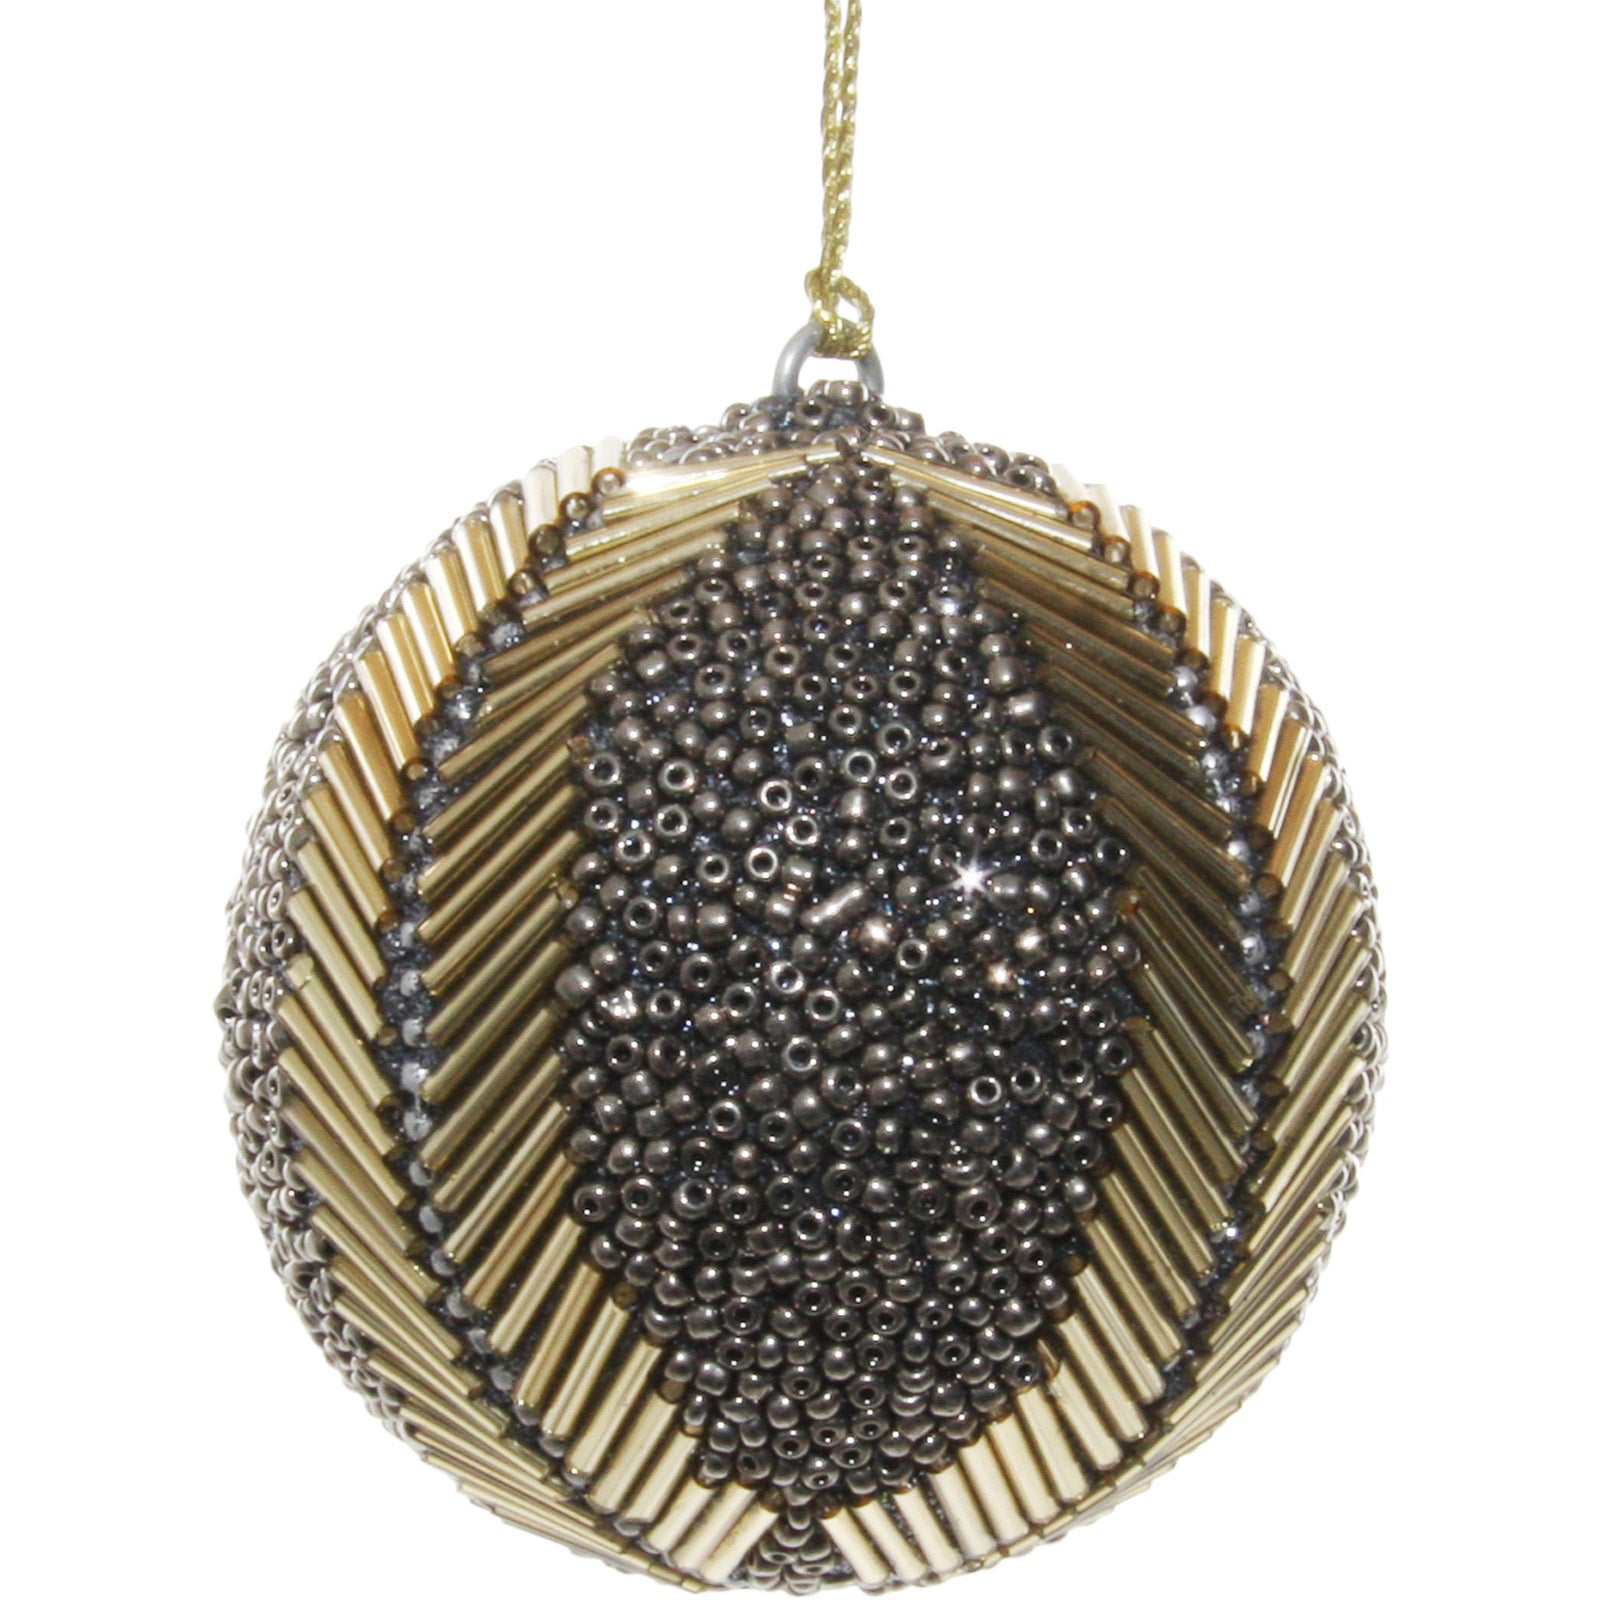 Beaded 4 Line Bauble by LuxDeco - Christmas tree decoration ornament - LuxDeco.com